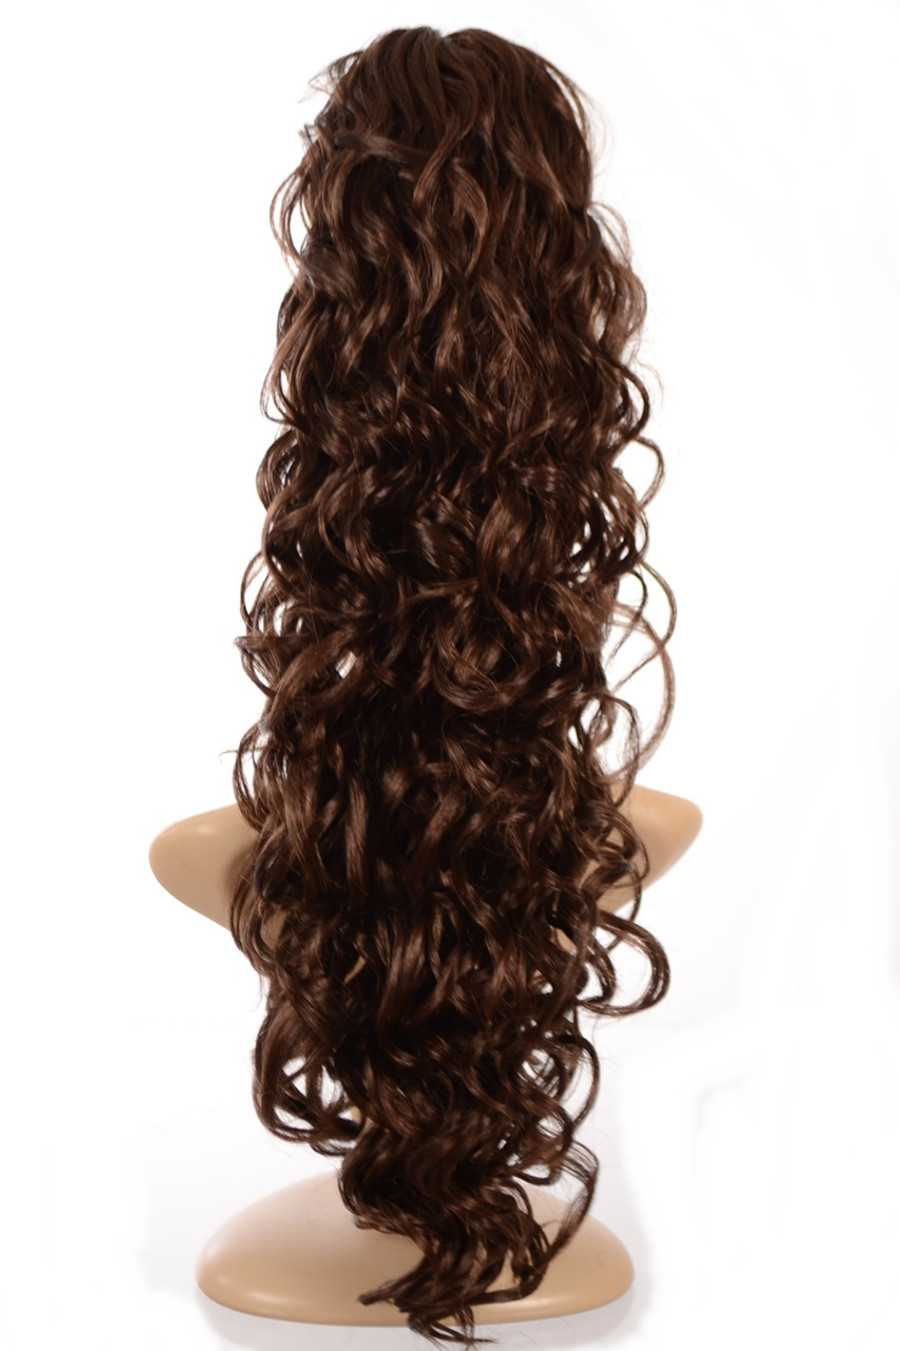 Claw Grip Ringlet Curly Hair Piece Ponytail Clip: Dark Chocolate Brown